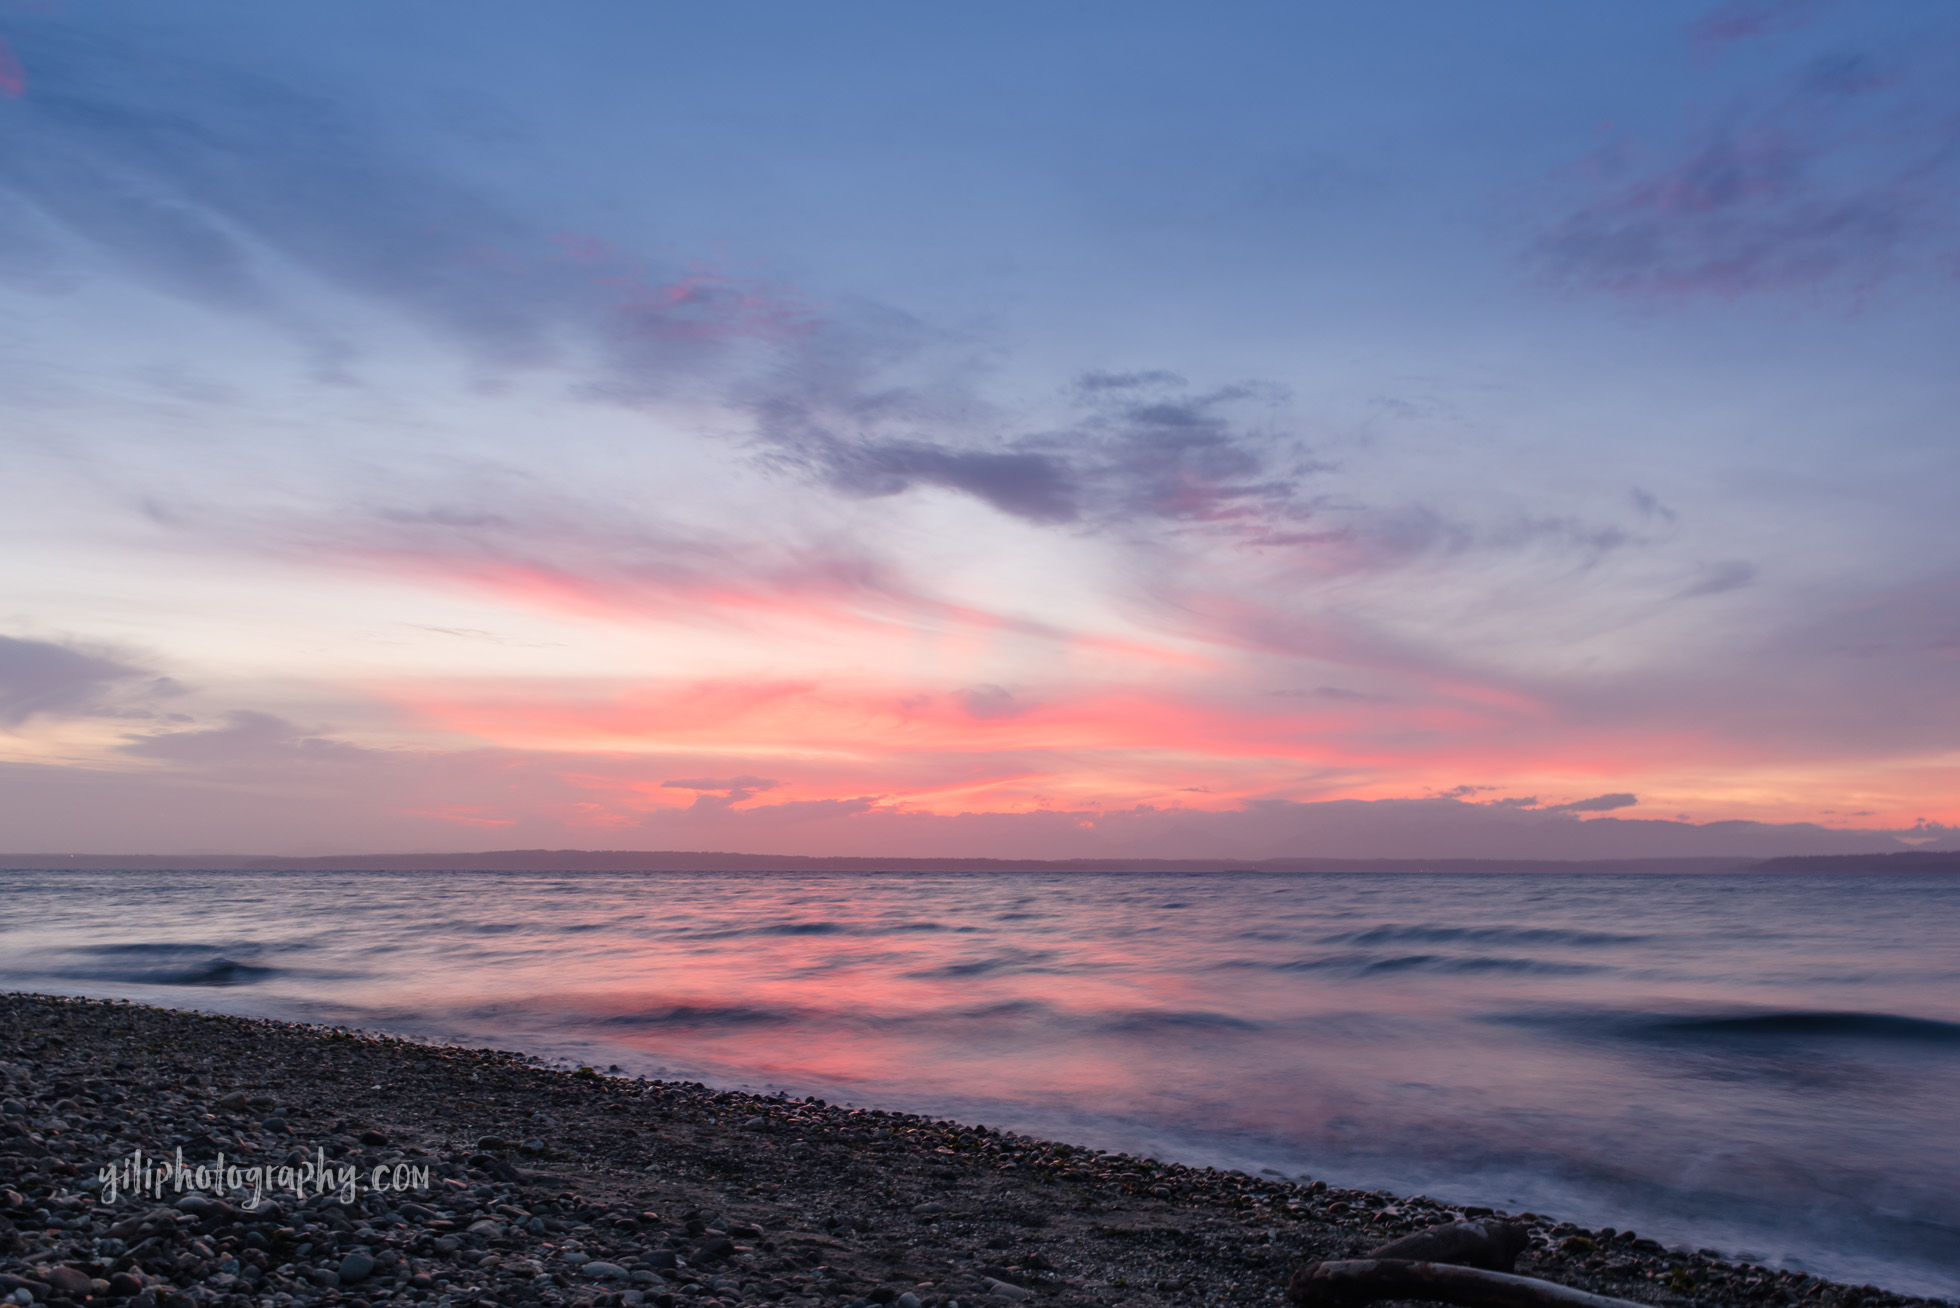 Carkeek beach in Seattle at sunset with blue pink sky